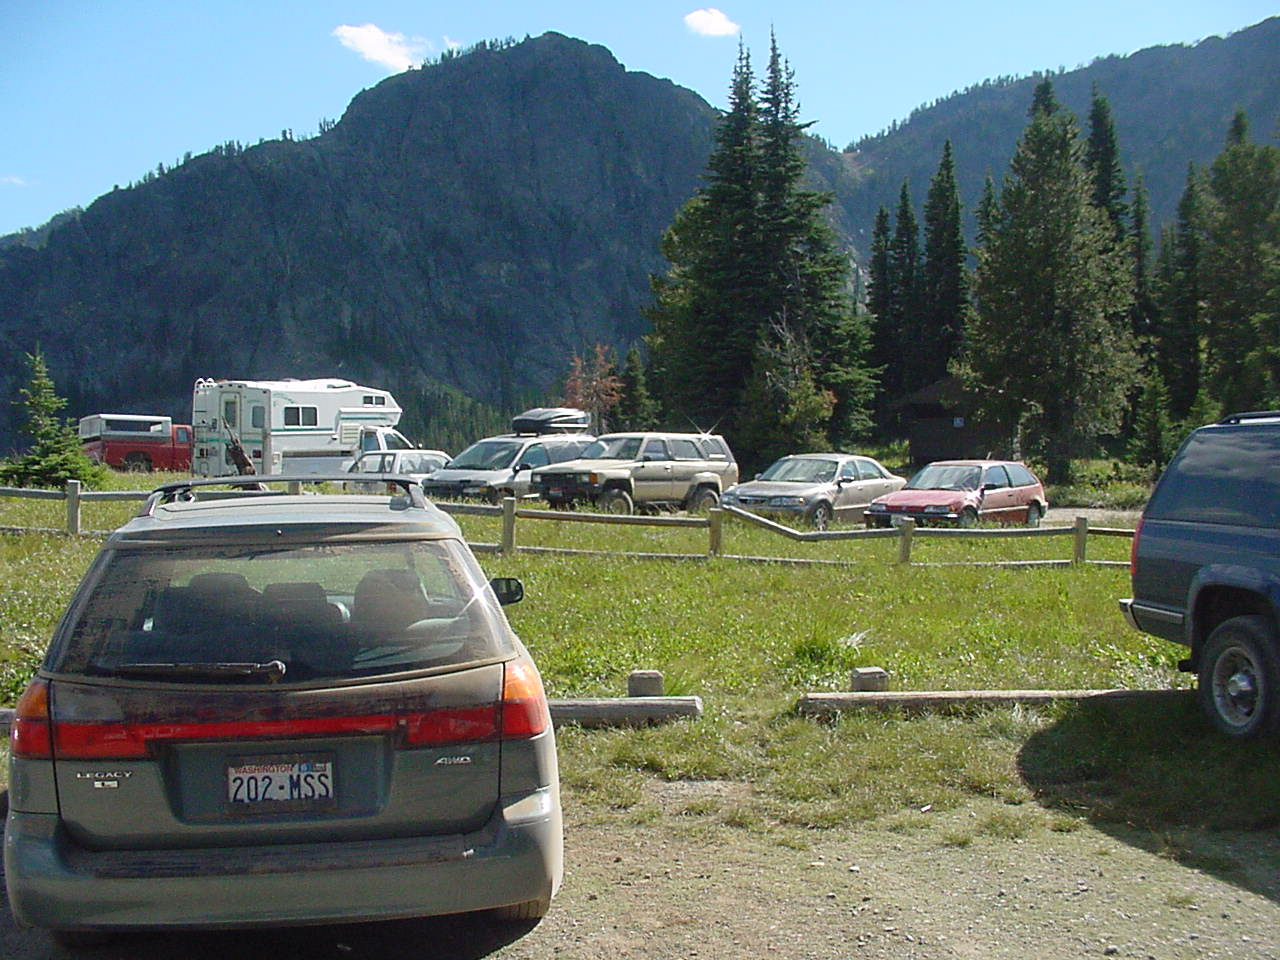 Cars parked at a forest trailhead with mountains in background